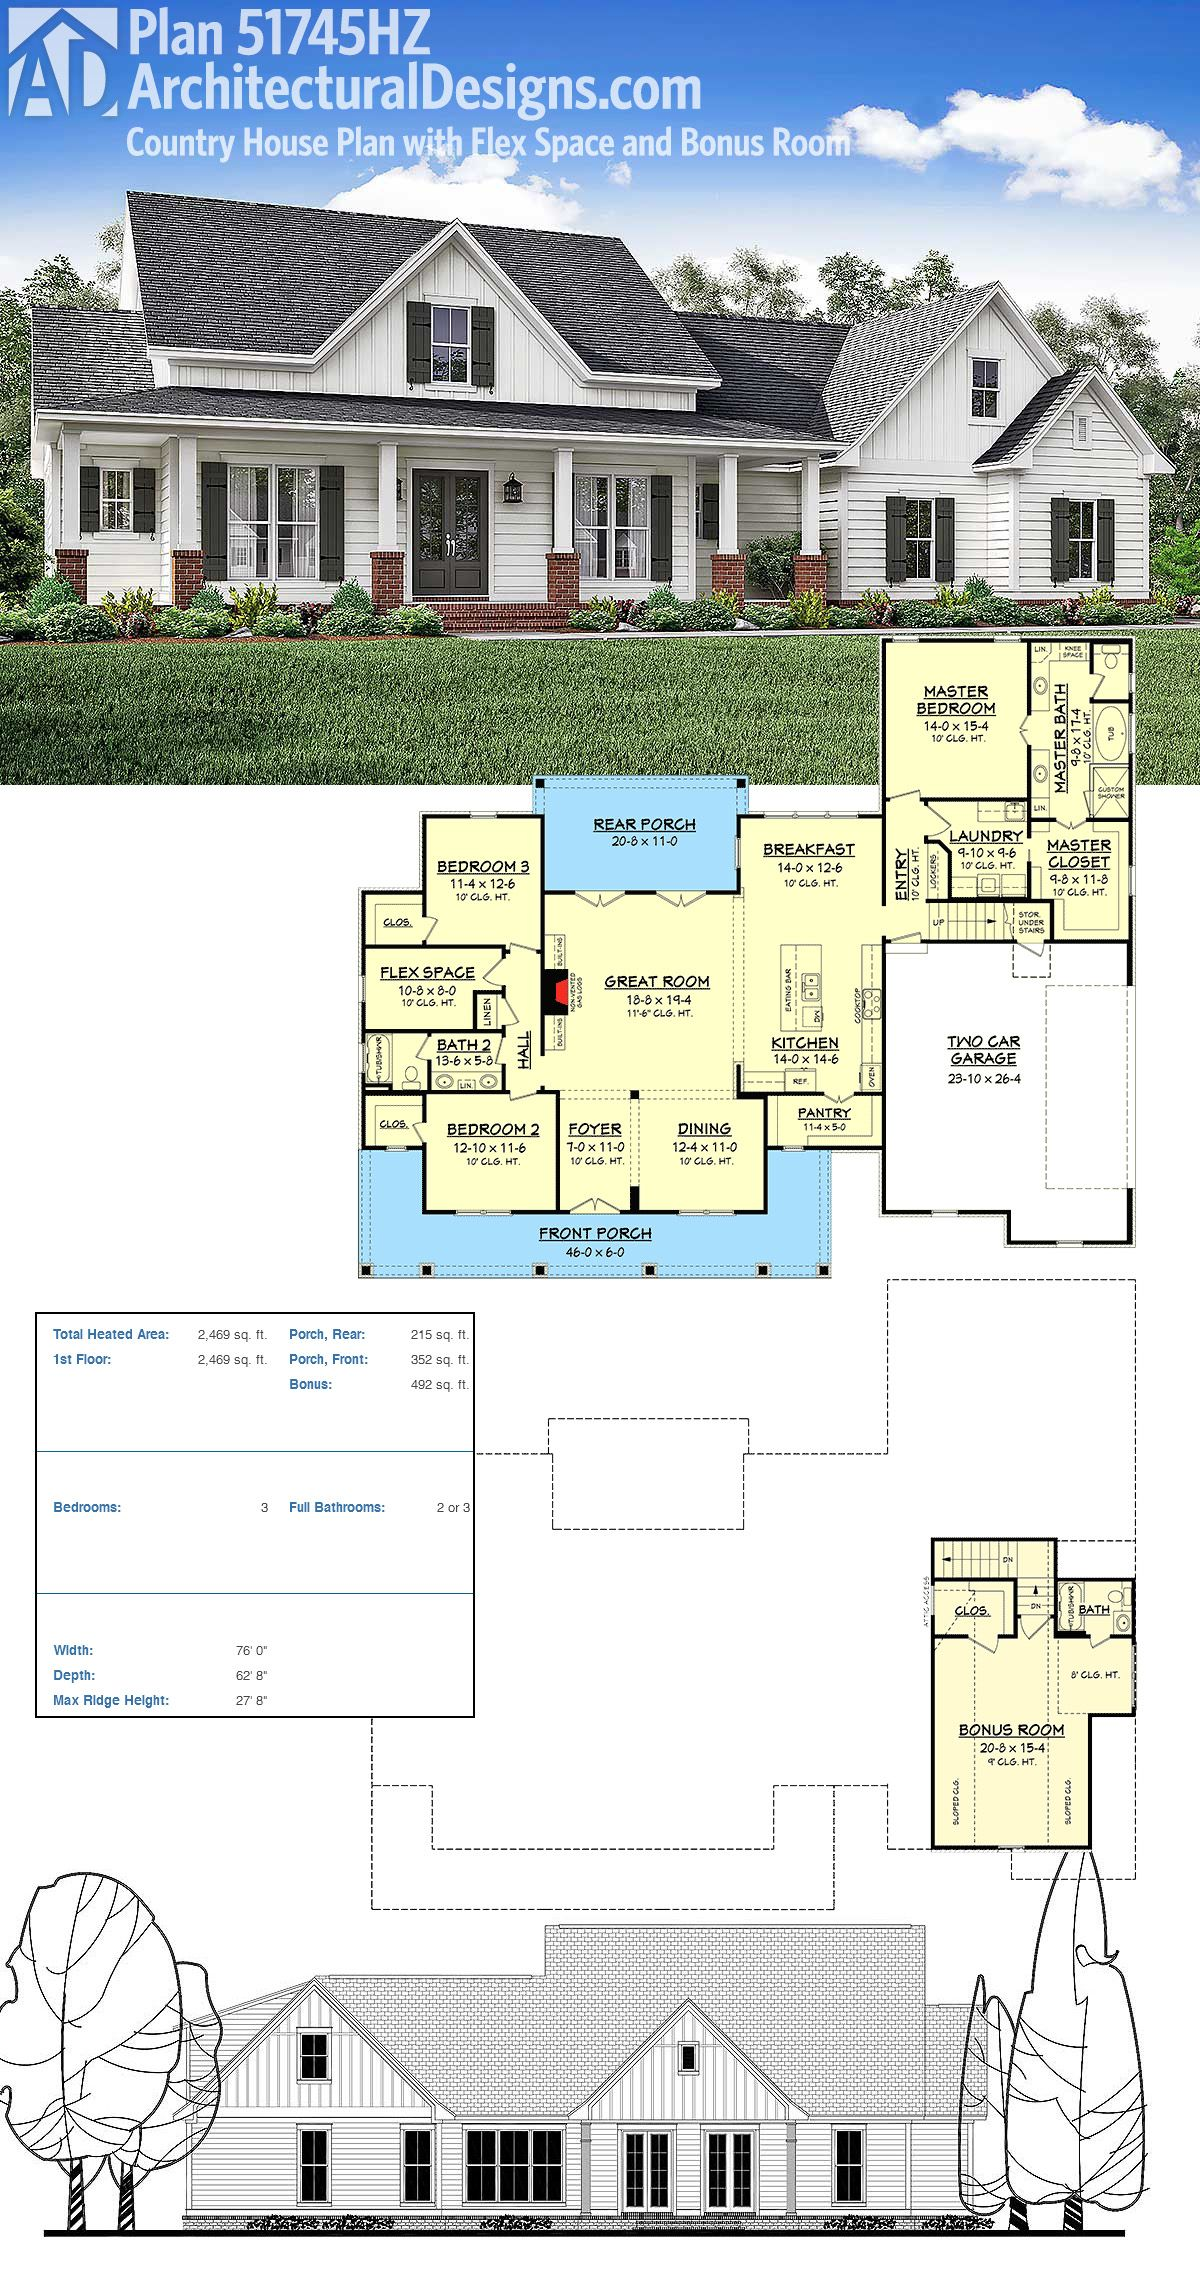 Plan 51745hz Country House Plan With Flex Space And Bonus Room Architectural Design House Plans Country House Plan Farmhouse Plans